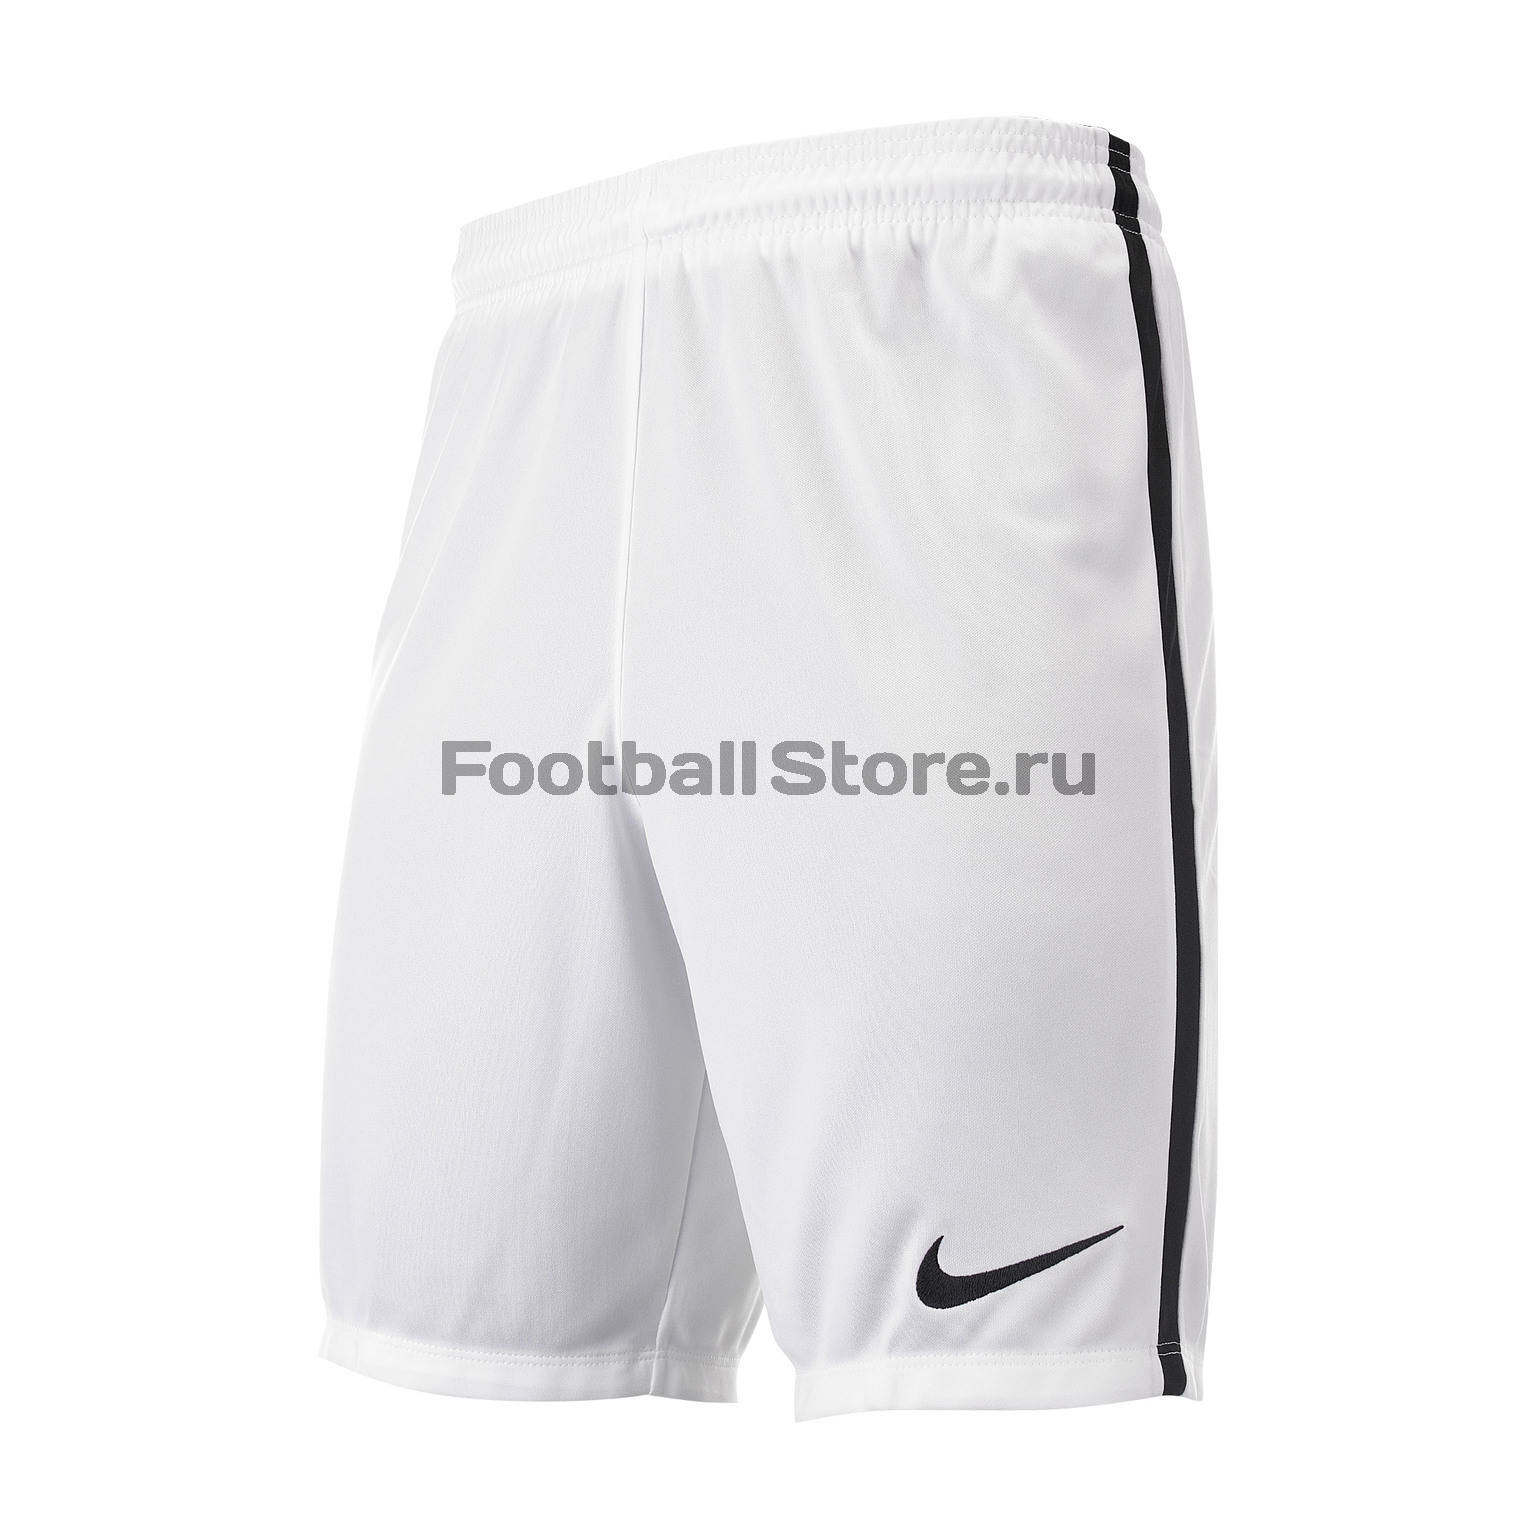 Шорты Nike Игровые шорты Nike League Knit Short NB 725881-100 галстуки